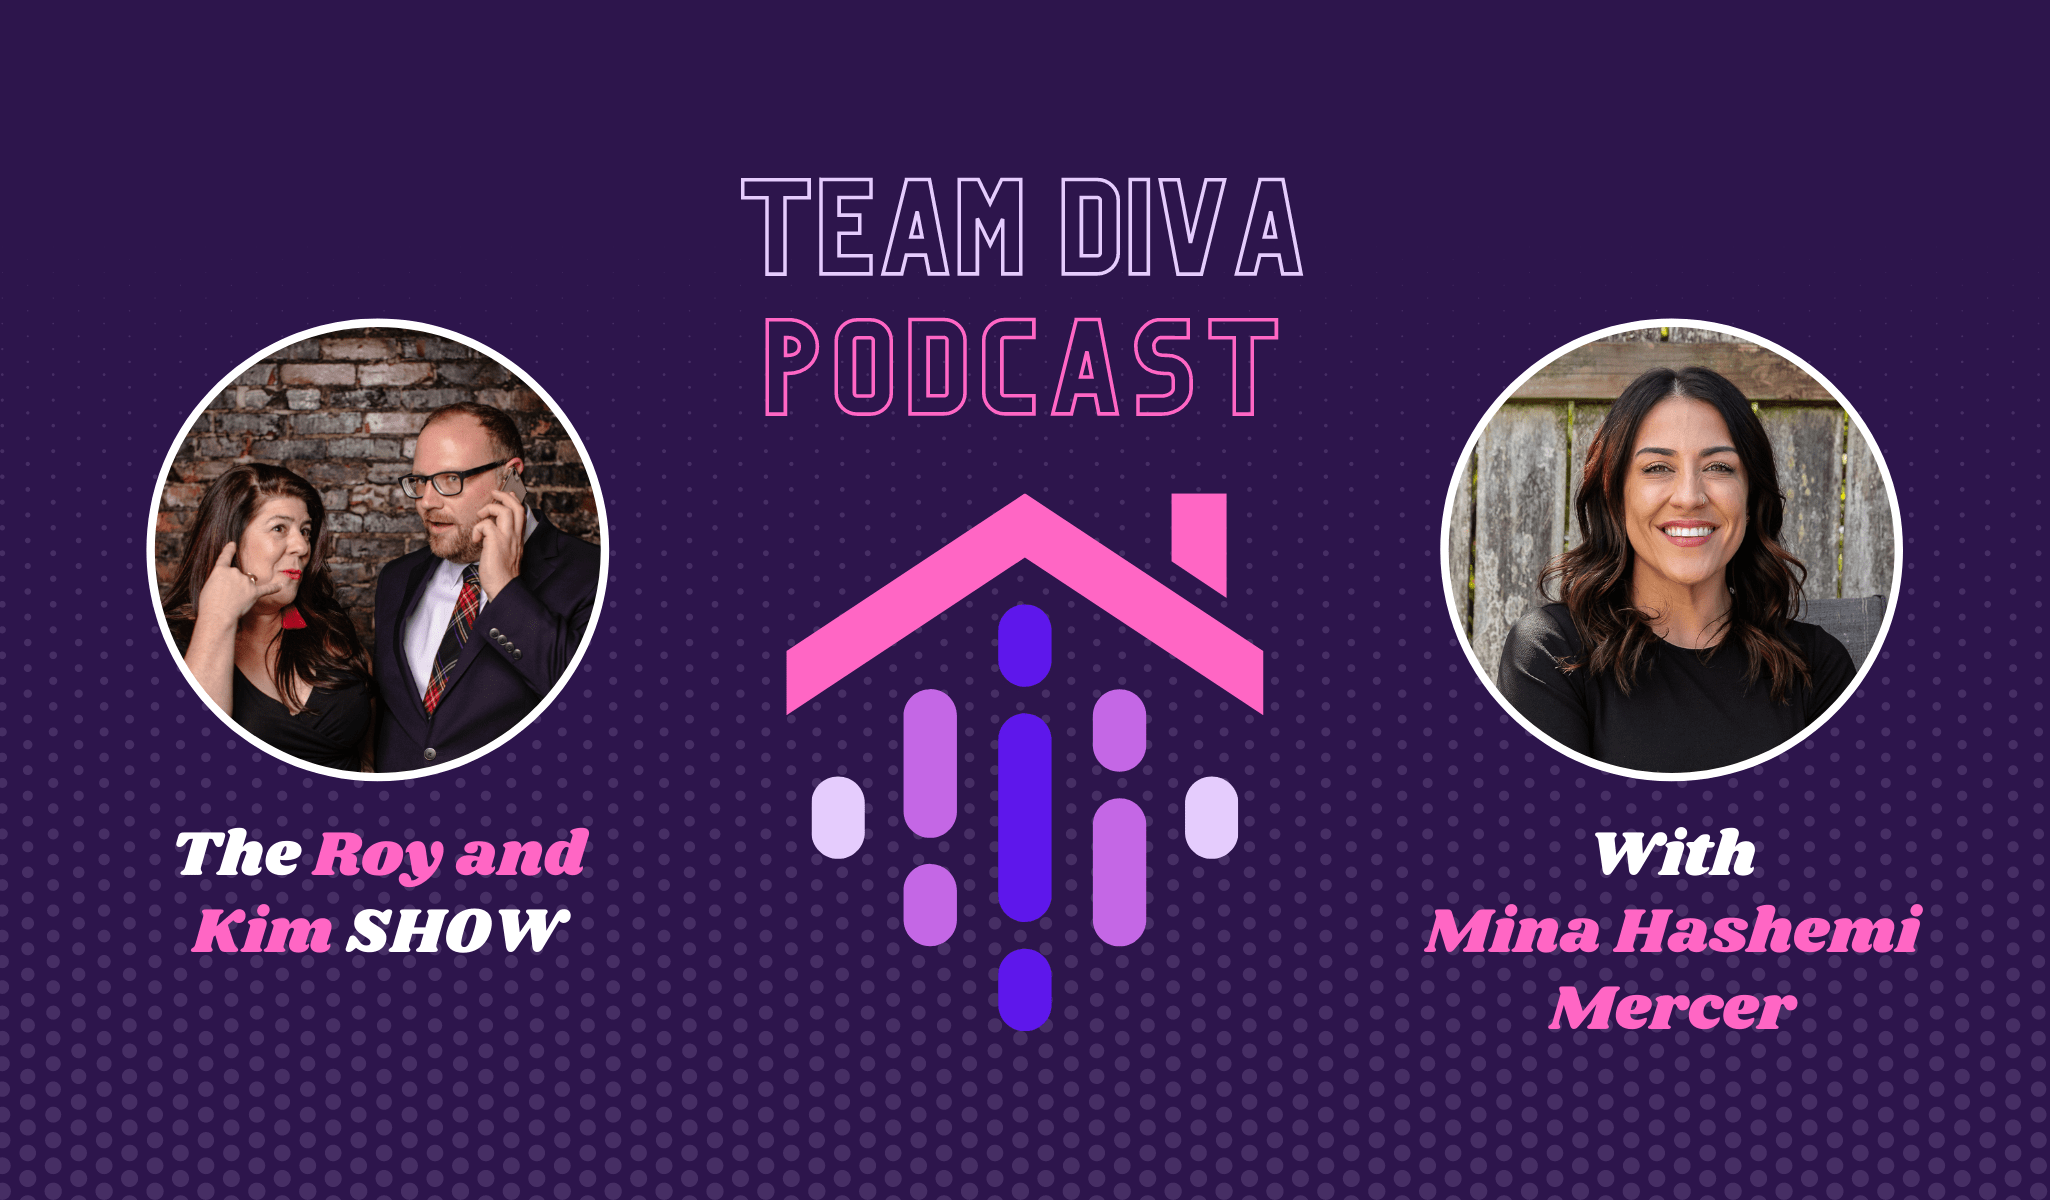 Seattle Real Estate Podcast with Mina Hashemi Mercer